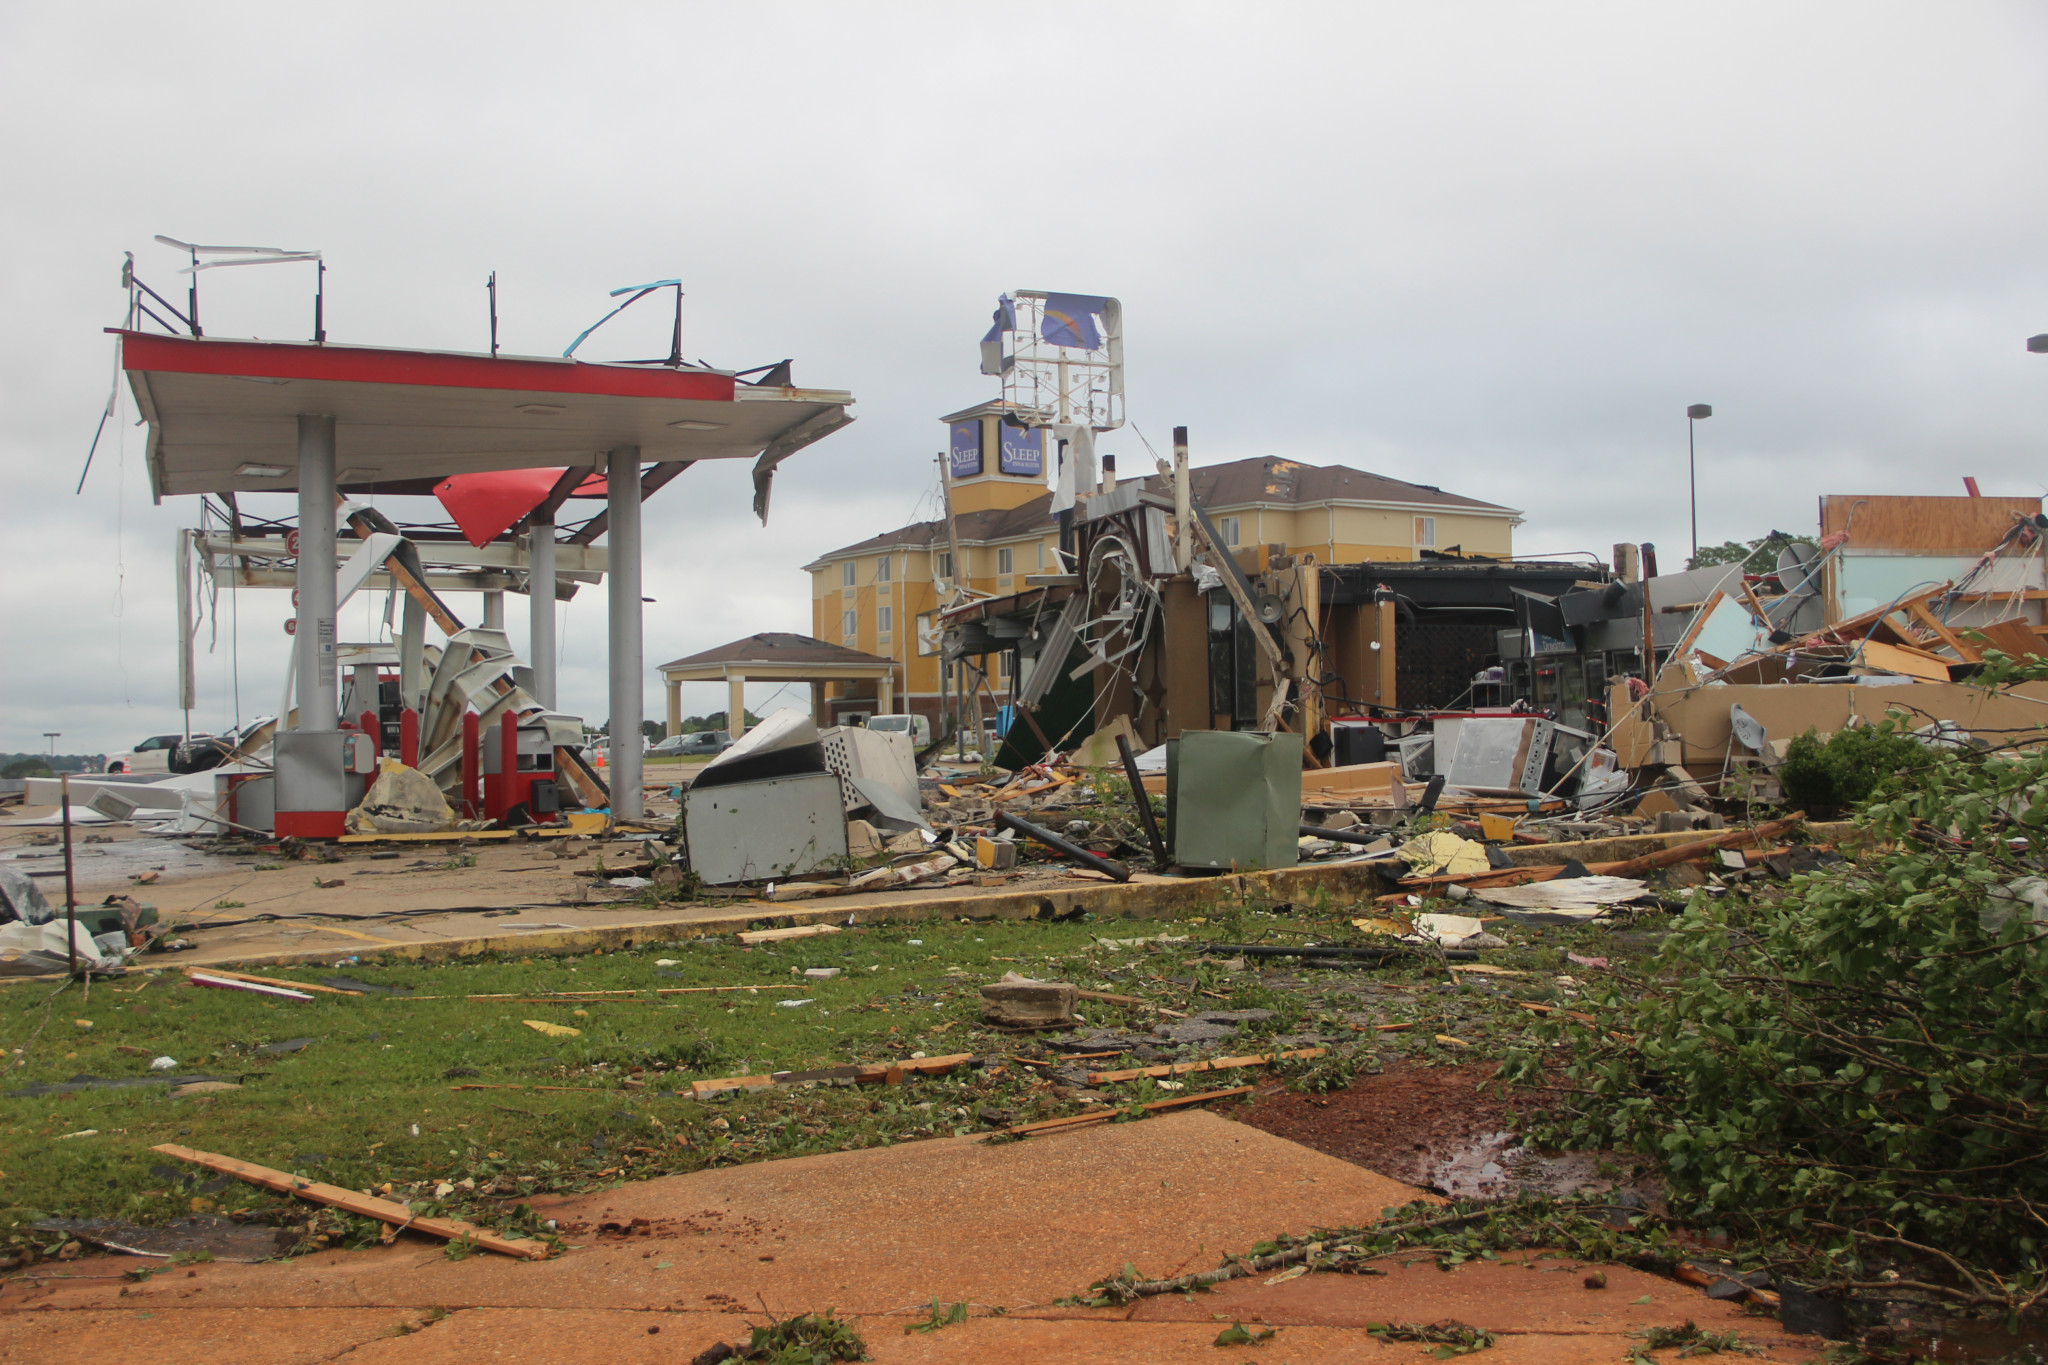 What was left of the Pow-Wow gas station and convenience store on the I-20 service road after the tornado.